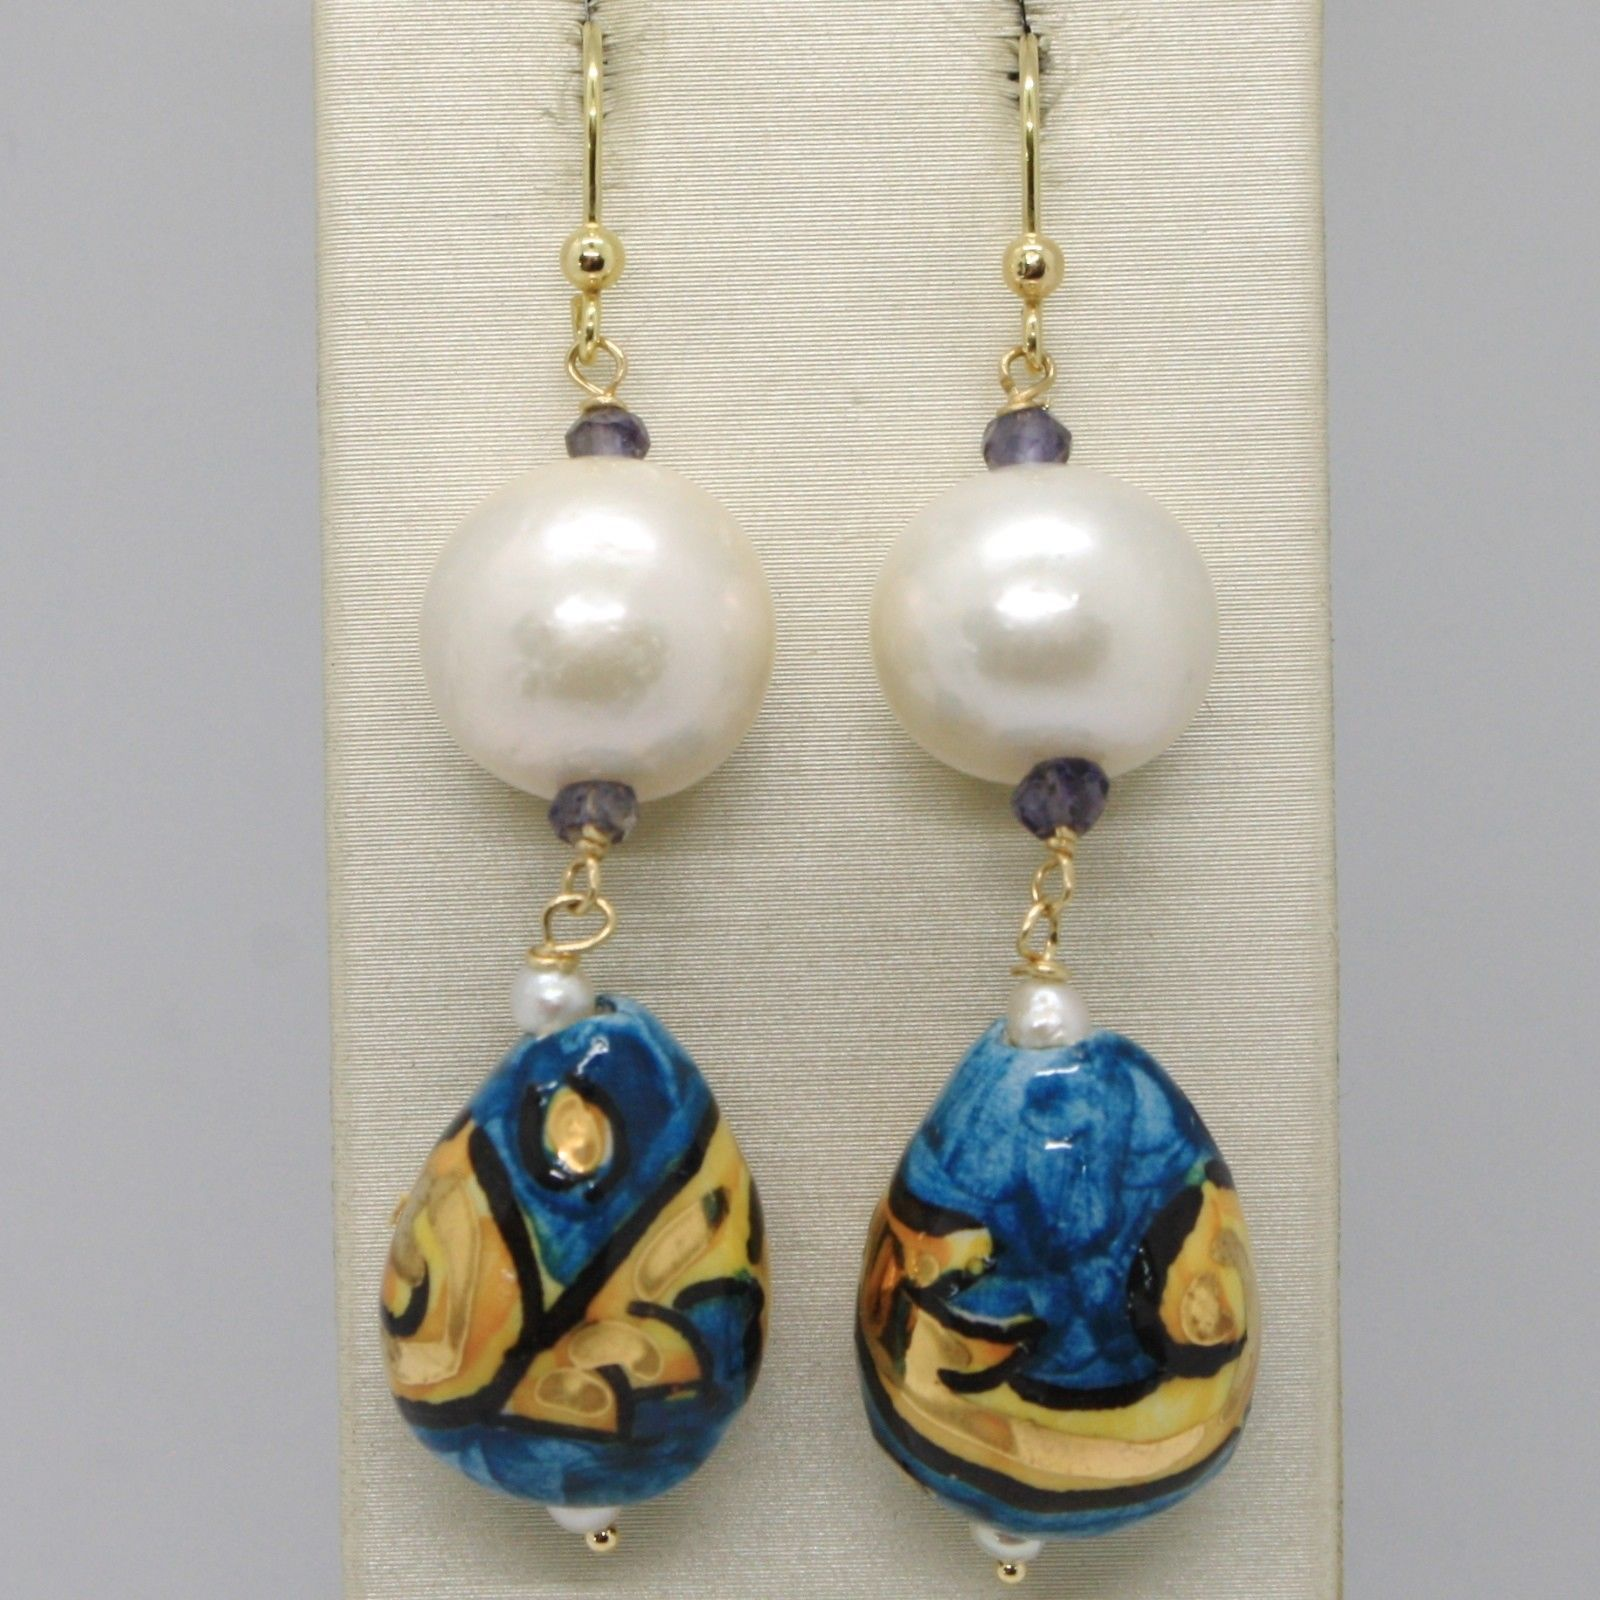 18K YELLOW GOLD EARRINGS IOLITE, PEARL, BLUE CERAMIC DROP HAND PAINTED IN ITALY